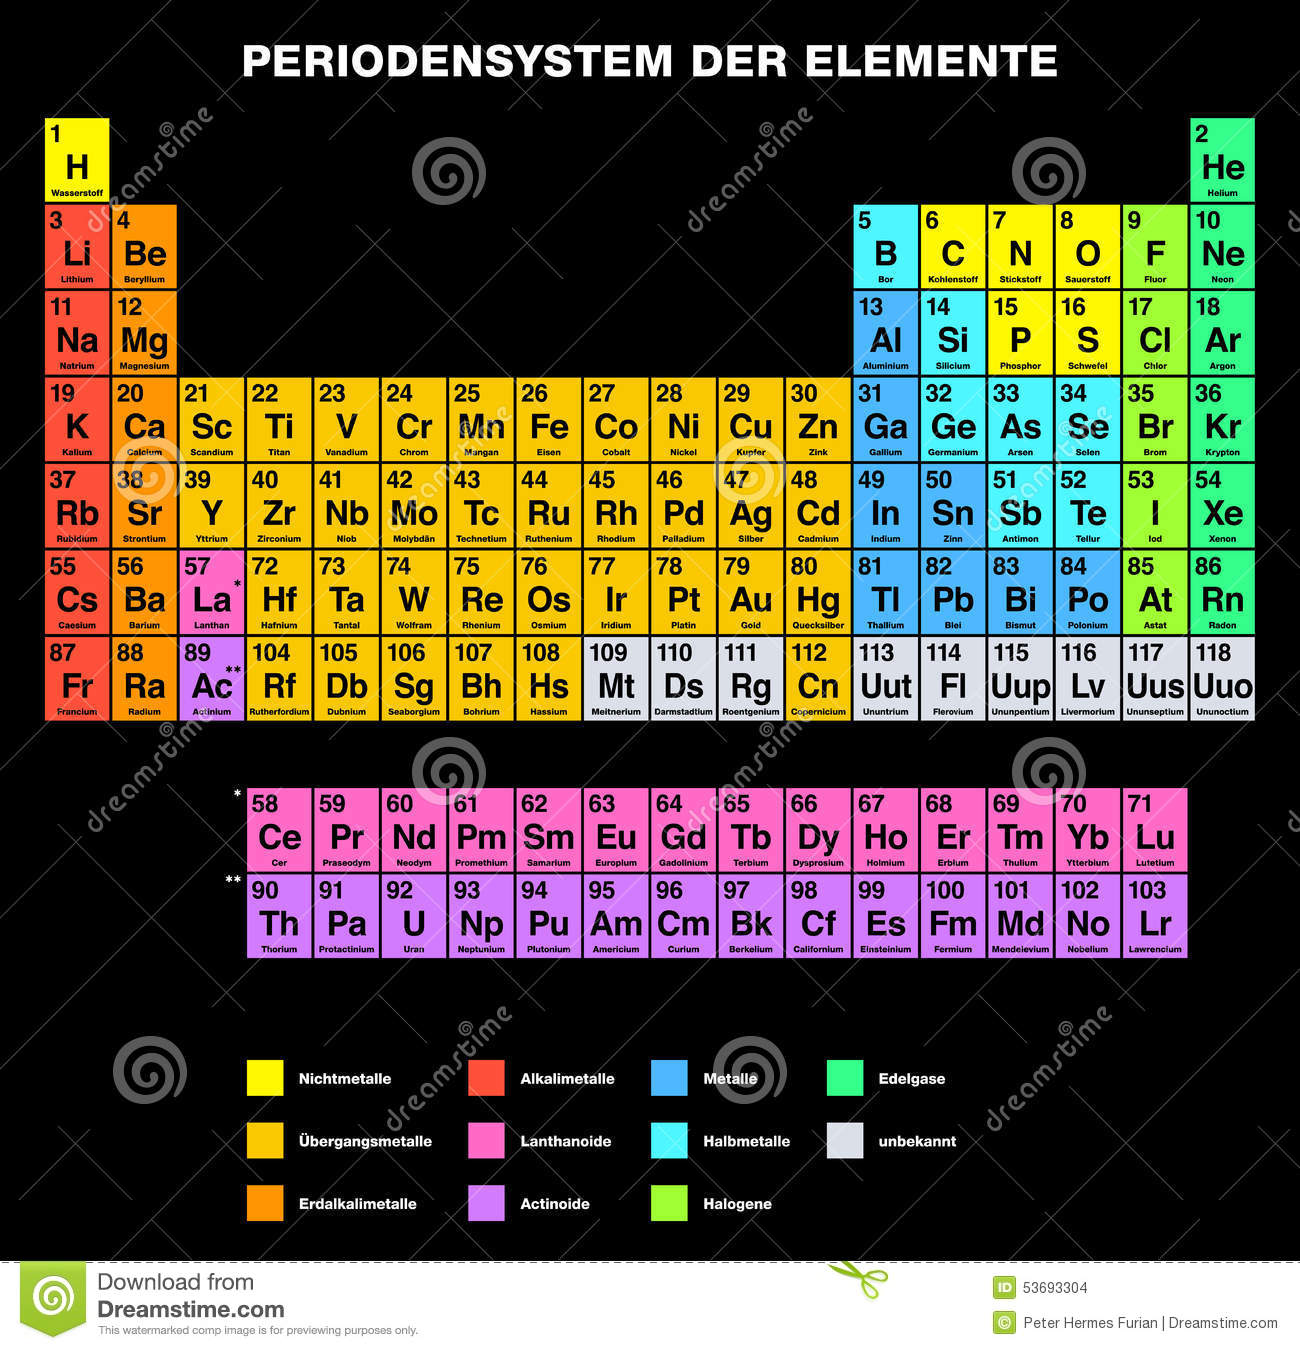 Periodic table of the elements german labeling stock photo image royalty free stock photo download periodic table gamestrikefo Images